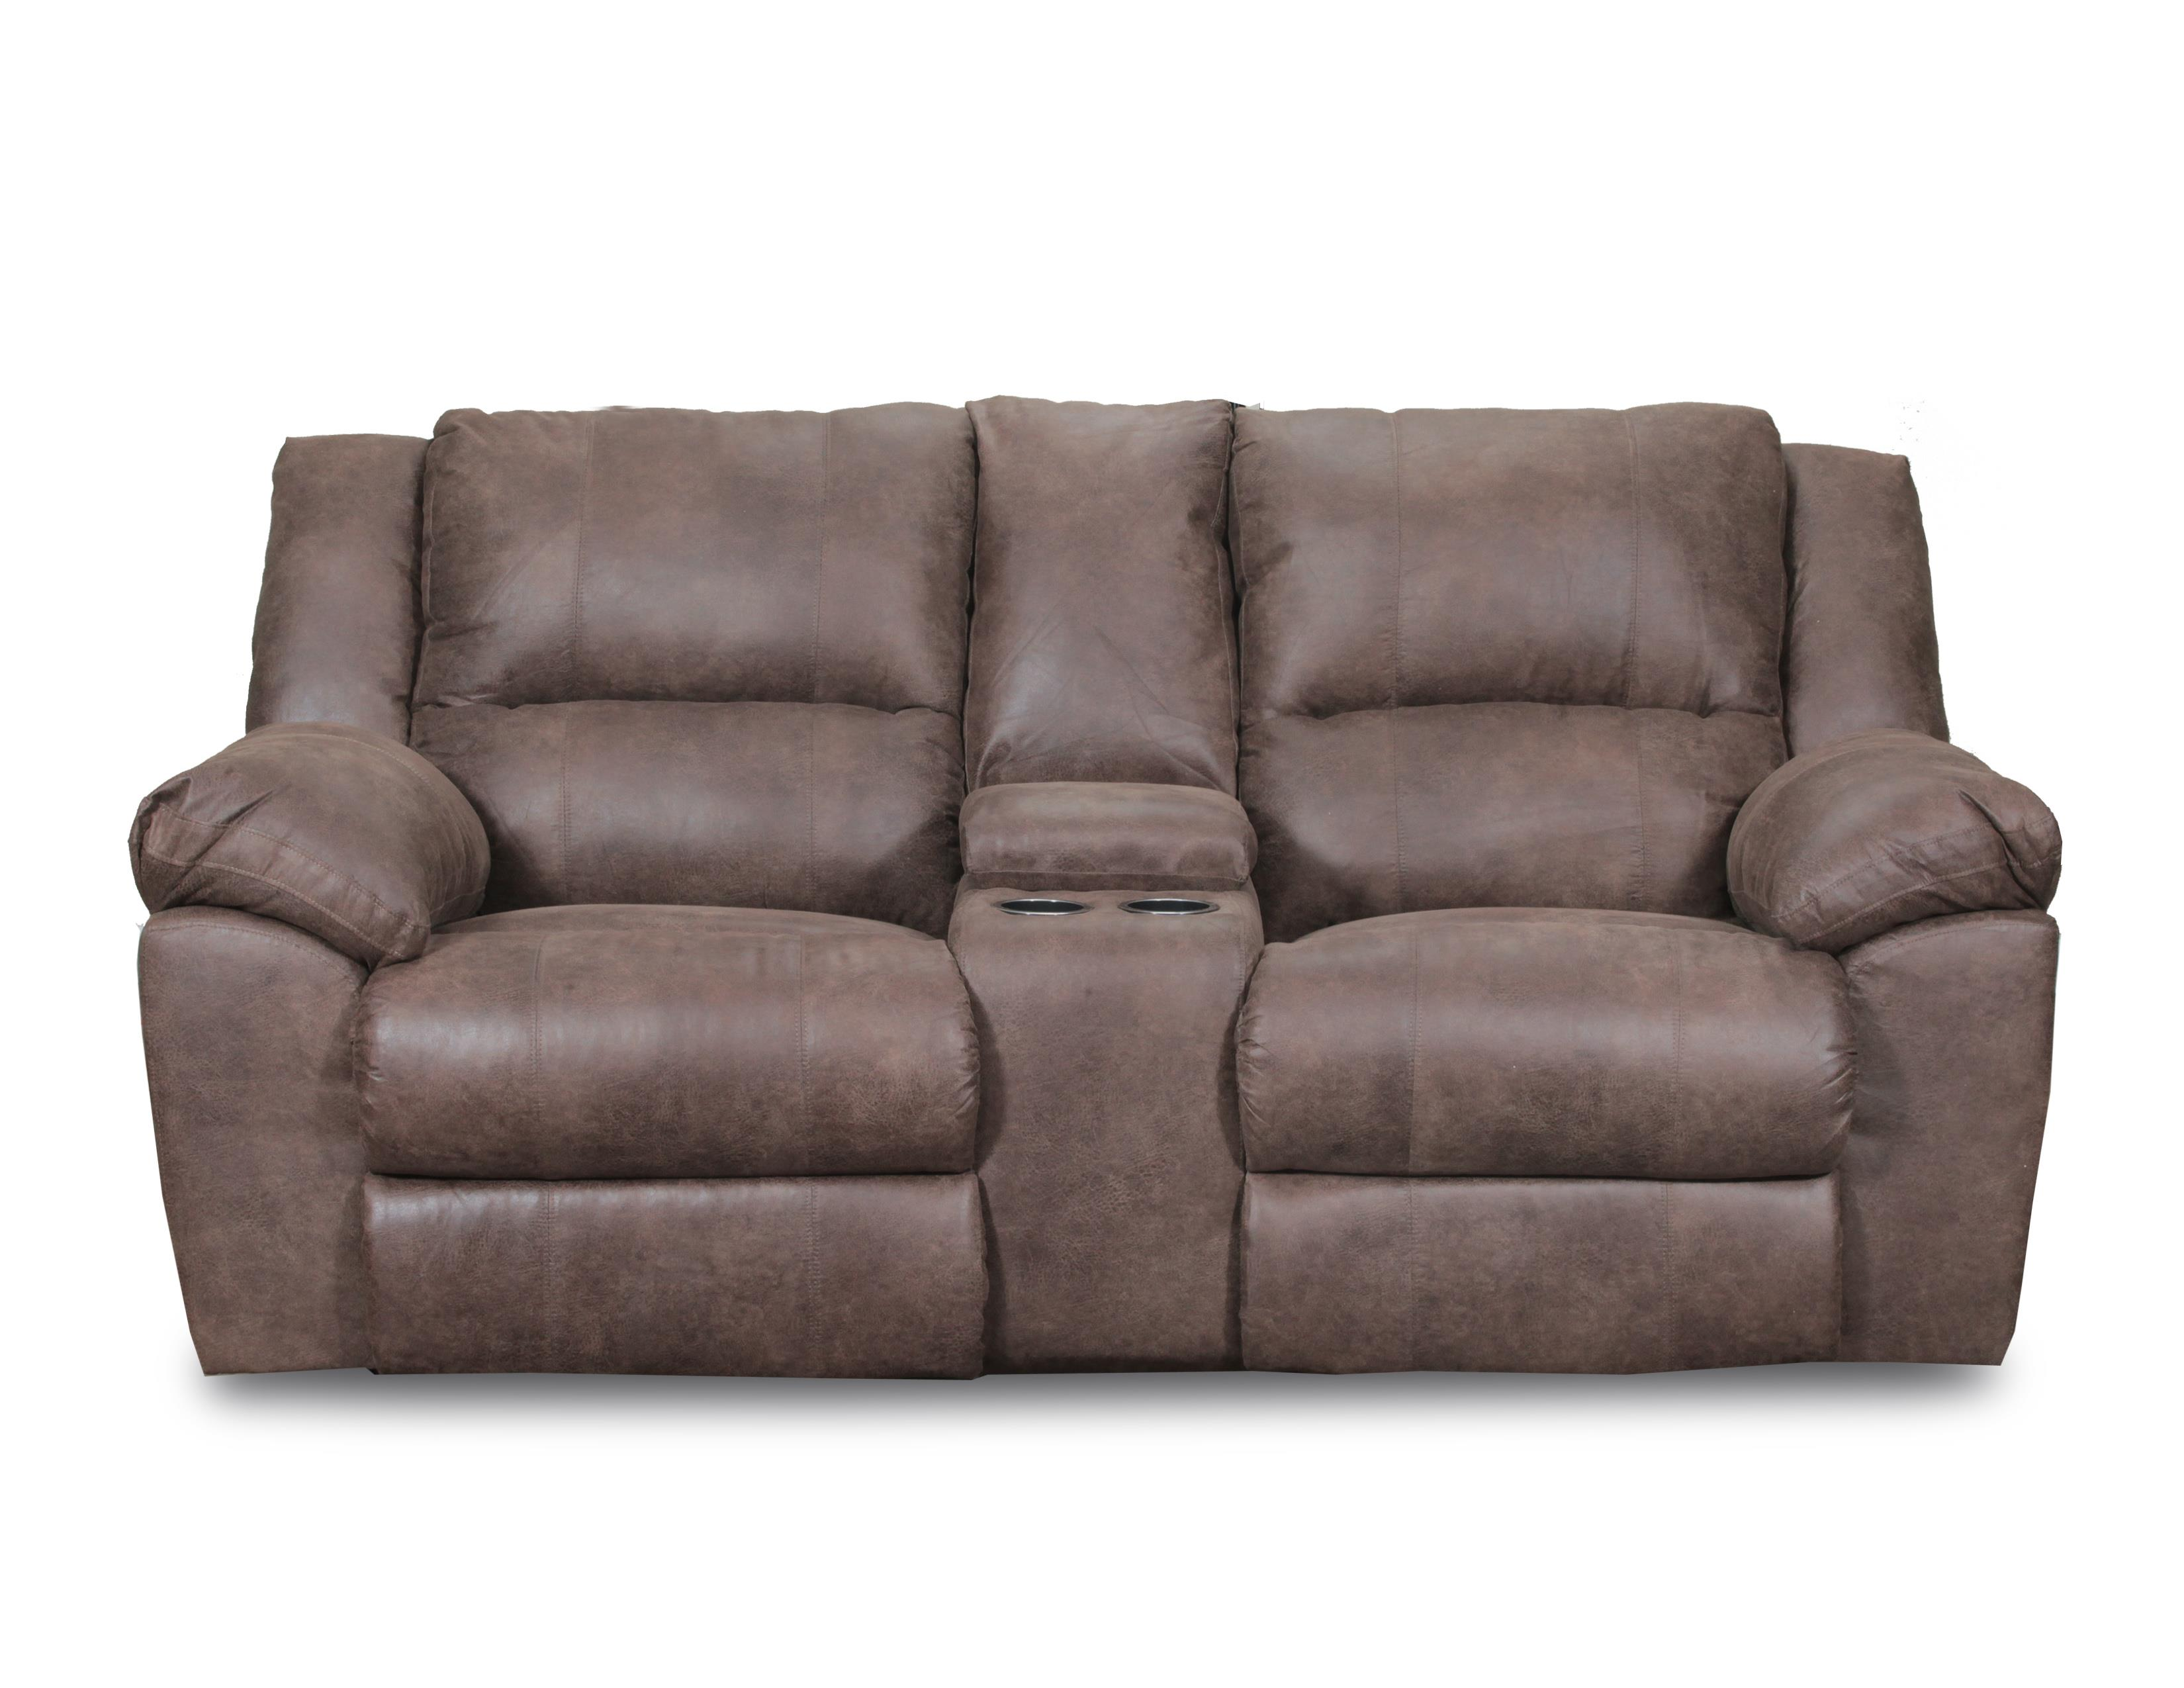 50111 Double Motion Loveseat by United Furniture Industries at Dream Home Interiors